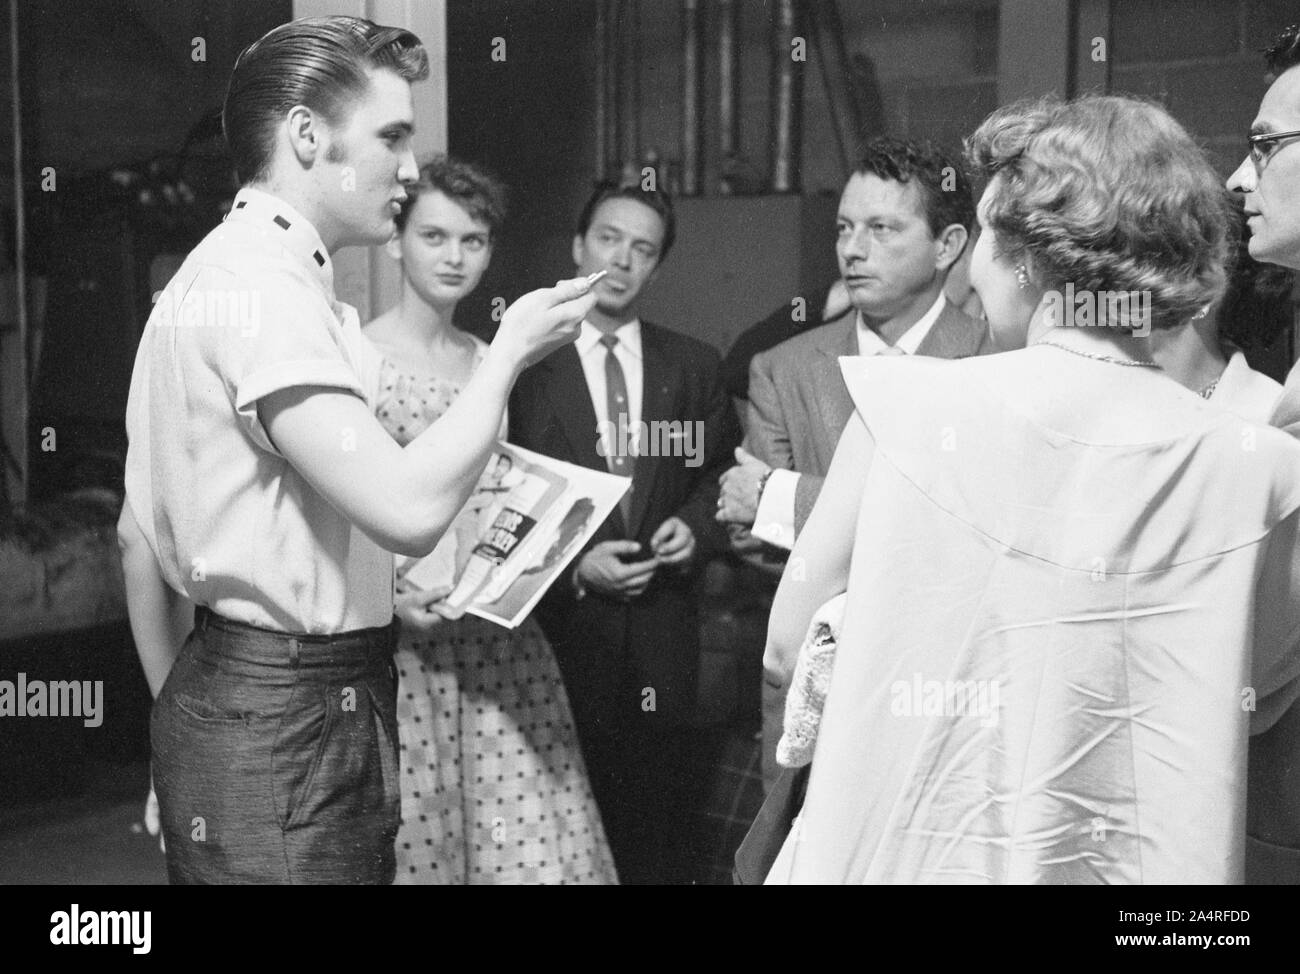 Elvis Presley backstage with fans at the University of Dayton Fieldhouse, May 27, 1956. Stock Photo